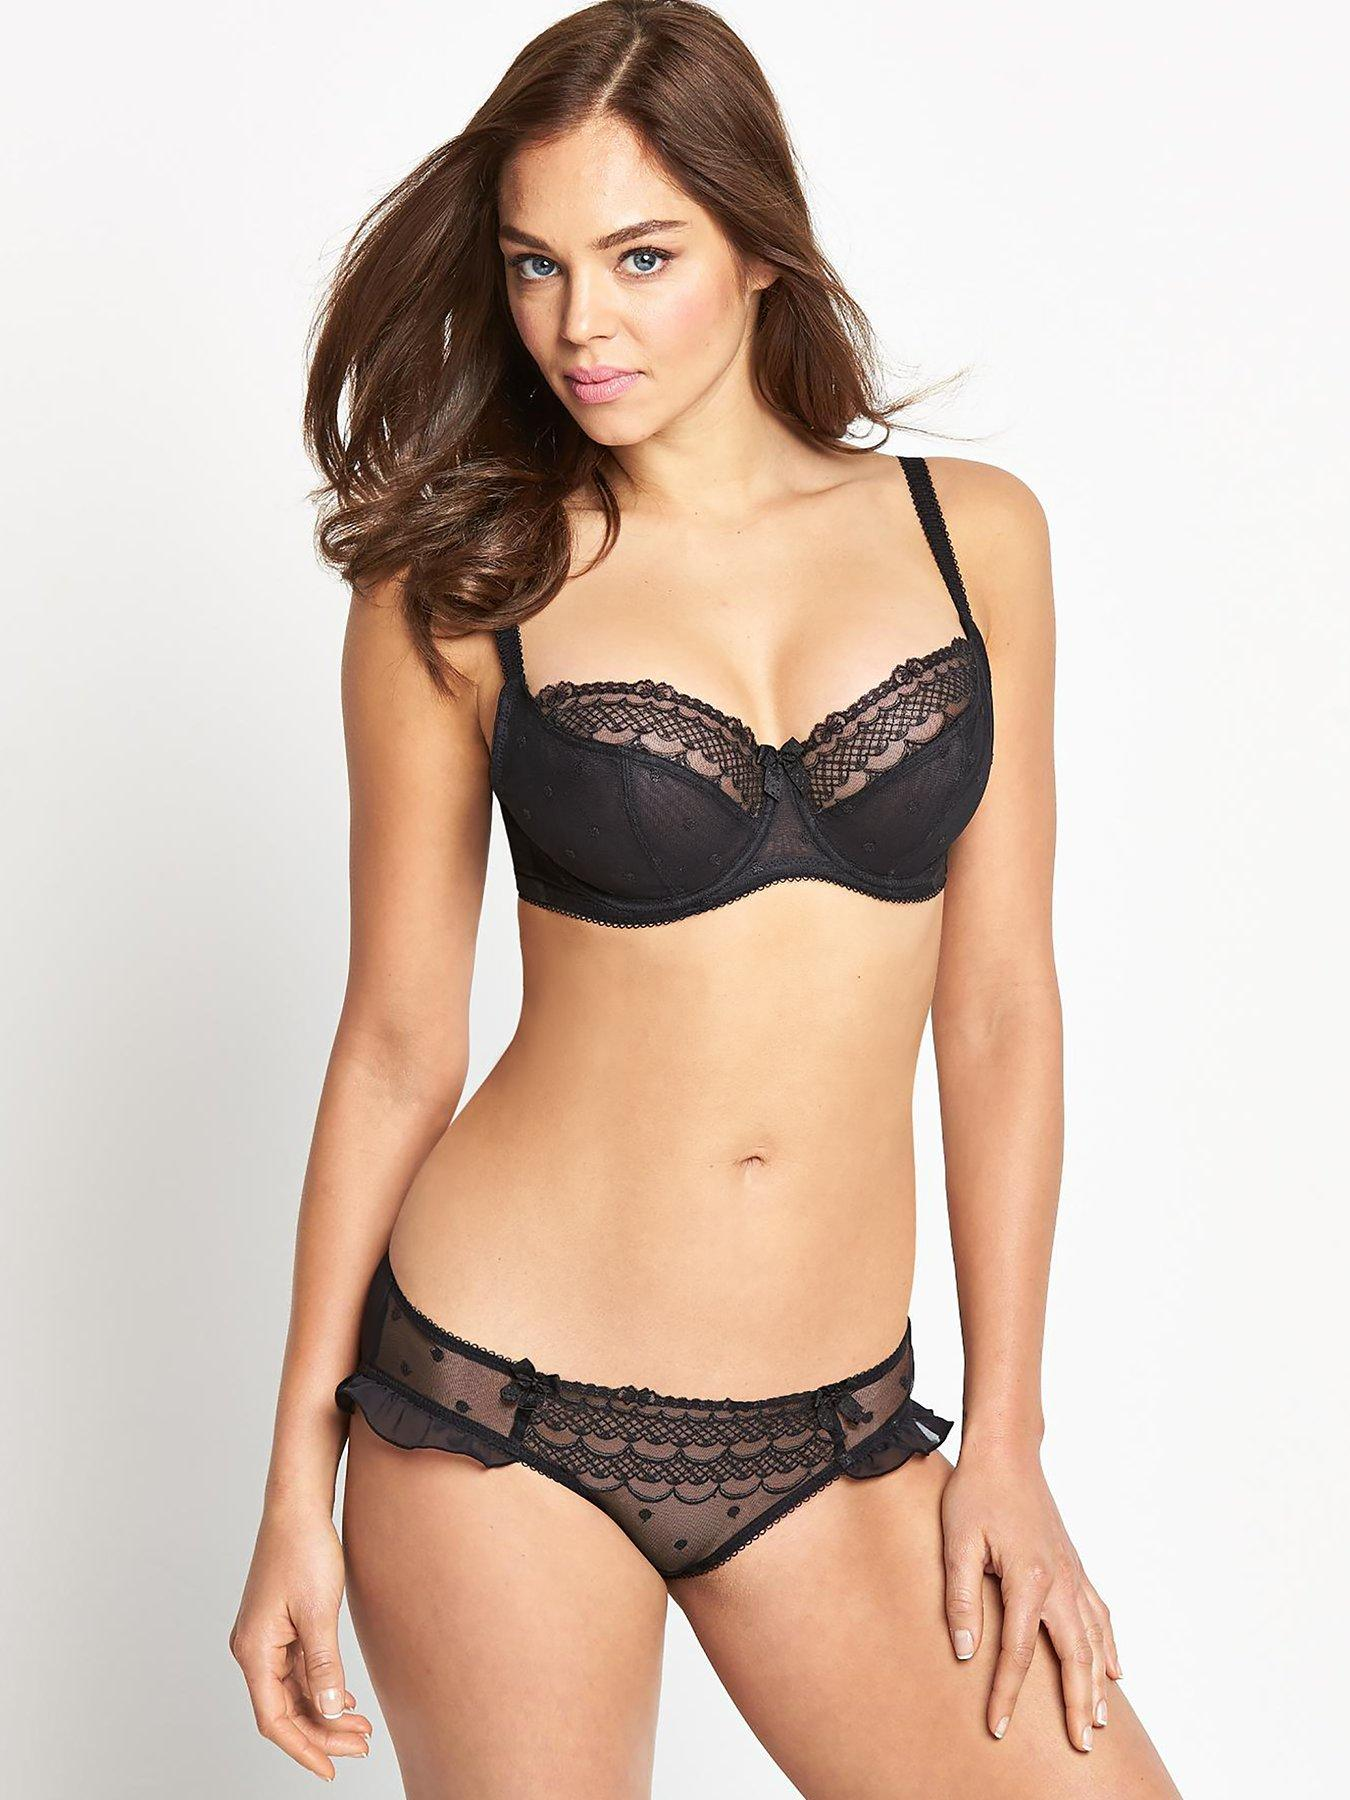 Recommend you nude black model cleo same